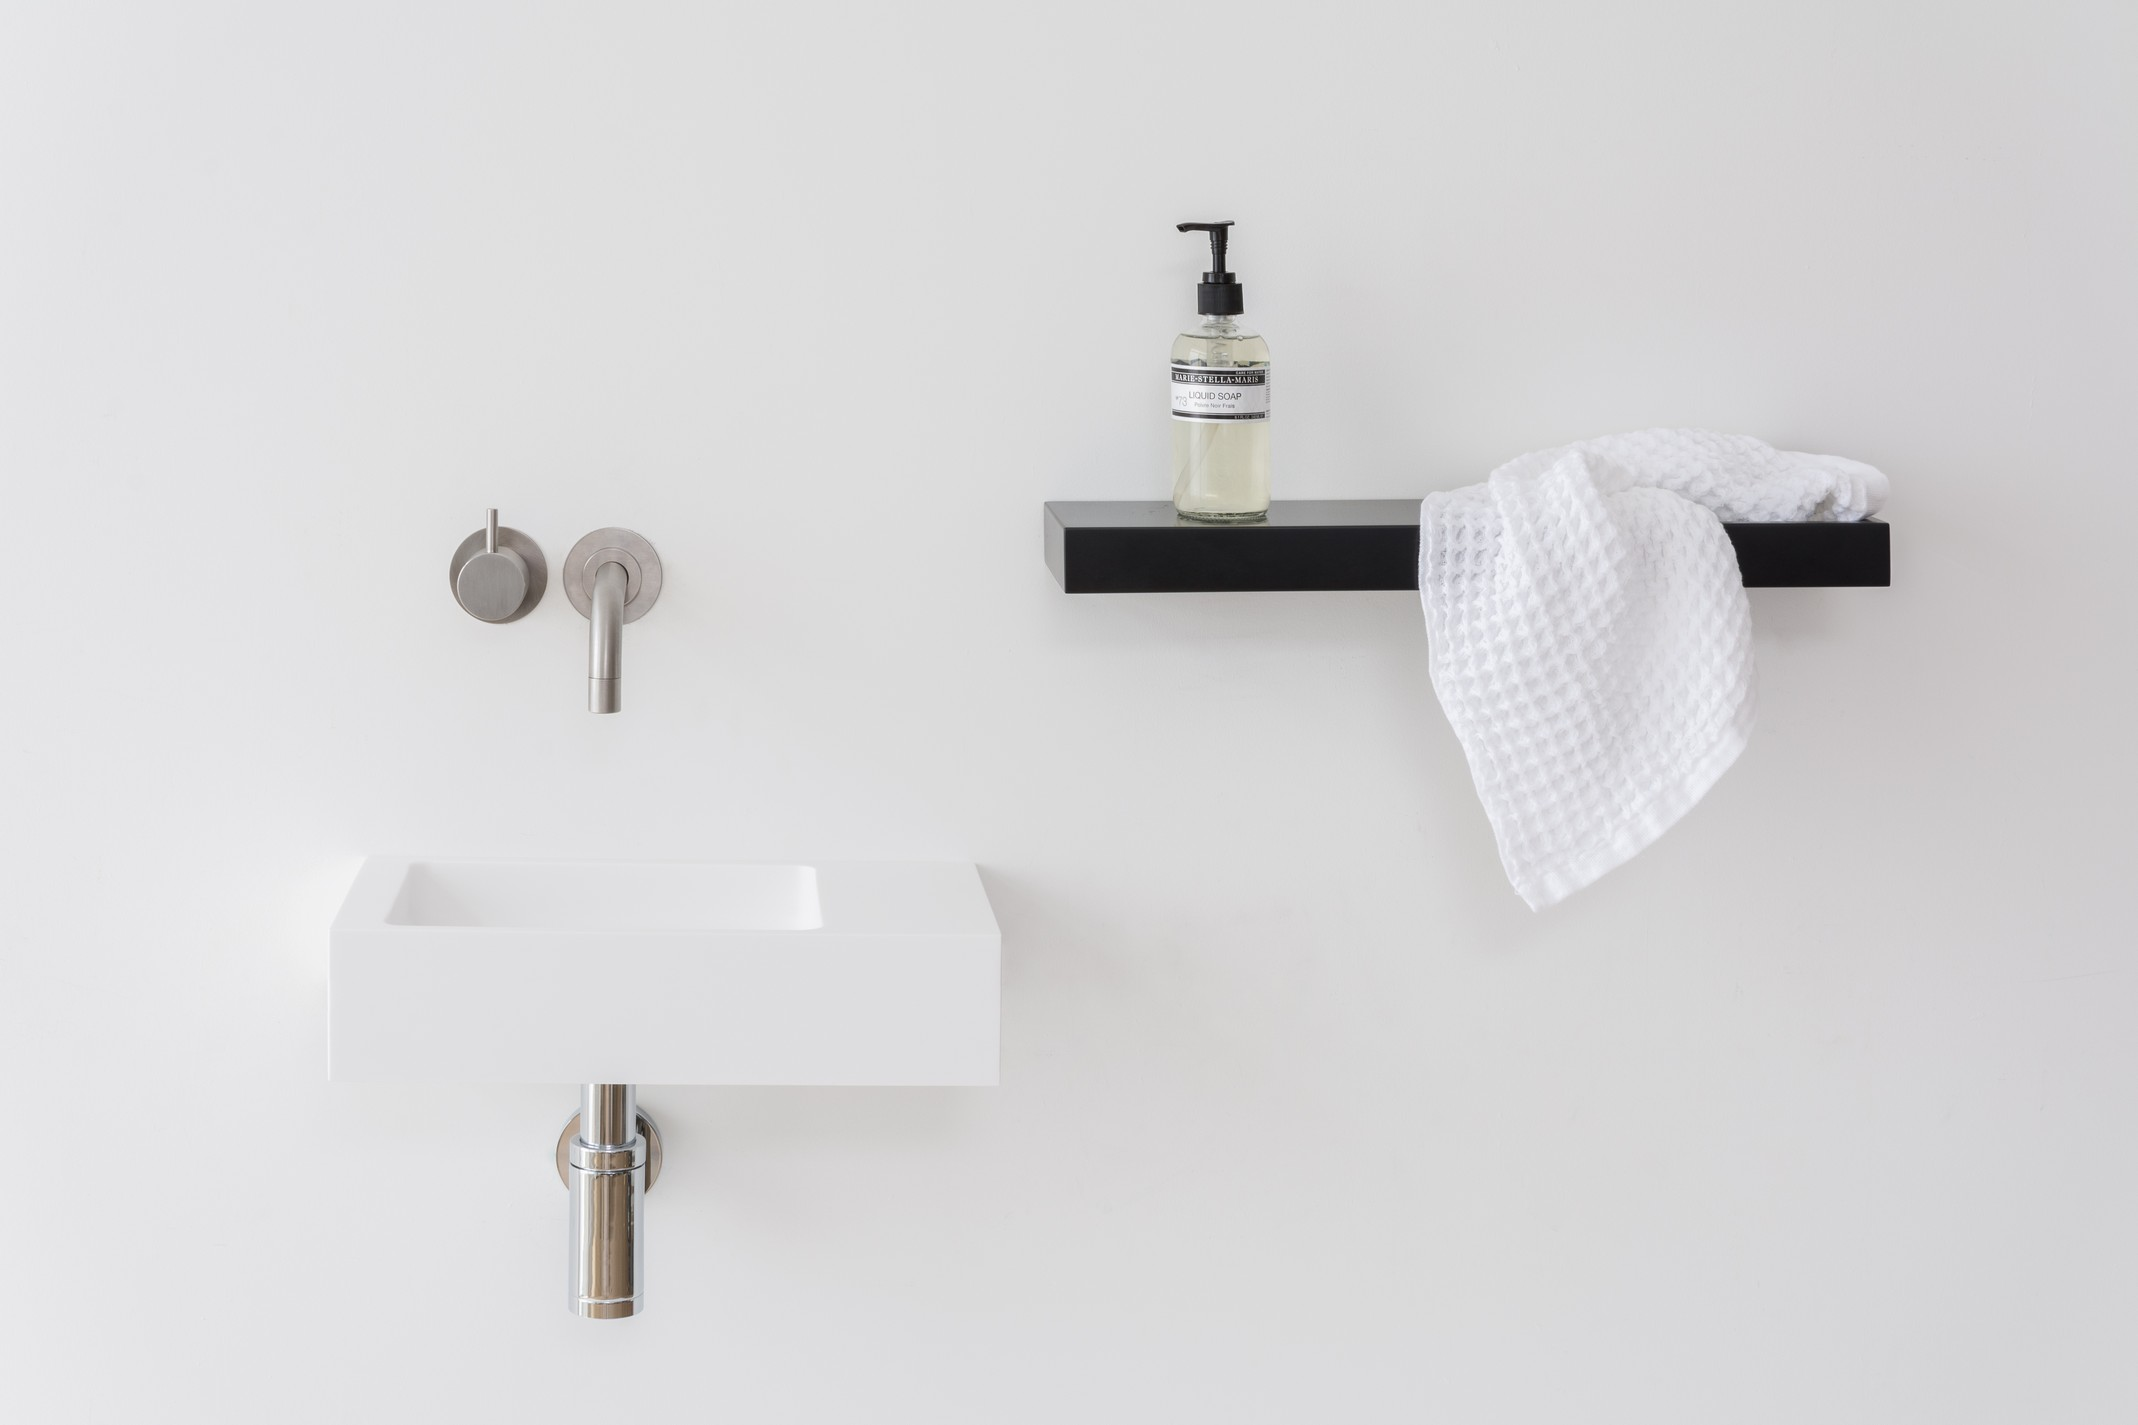 Mi Can Be Used For Your Favorite Accessories And Is Available In A Range Of Hi Macs Colours To Brighten Up Bathroom